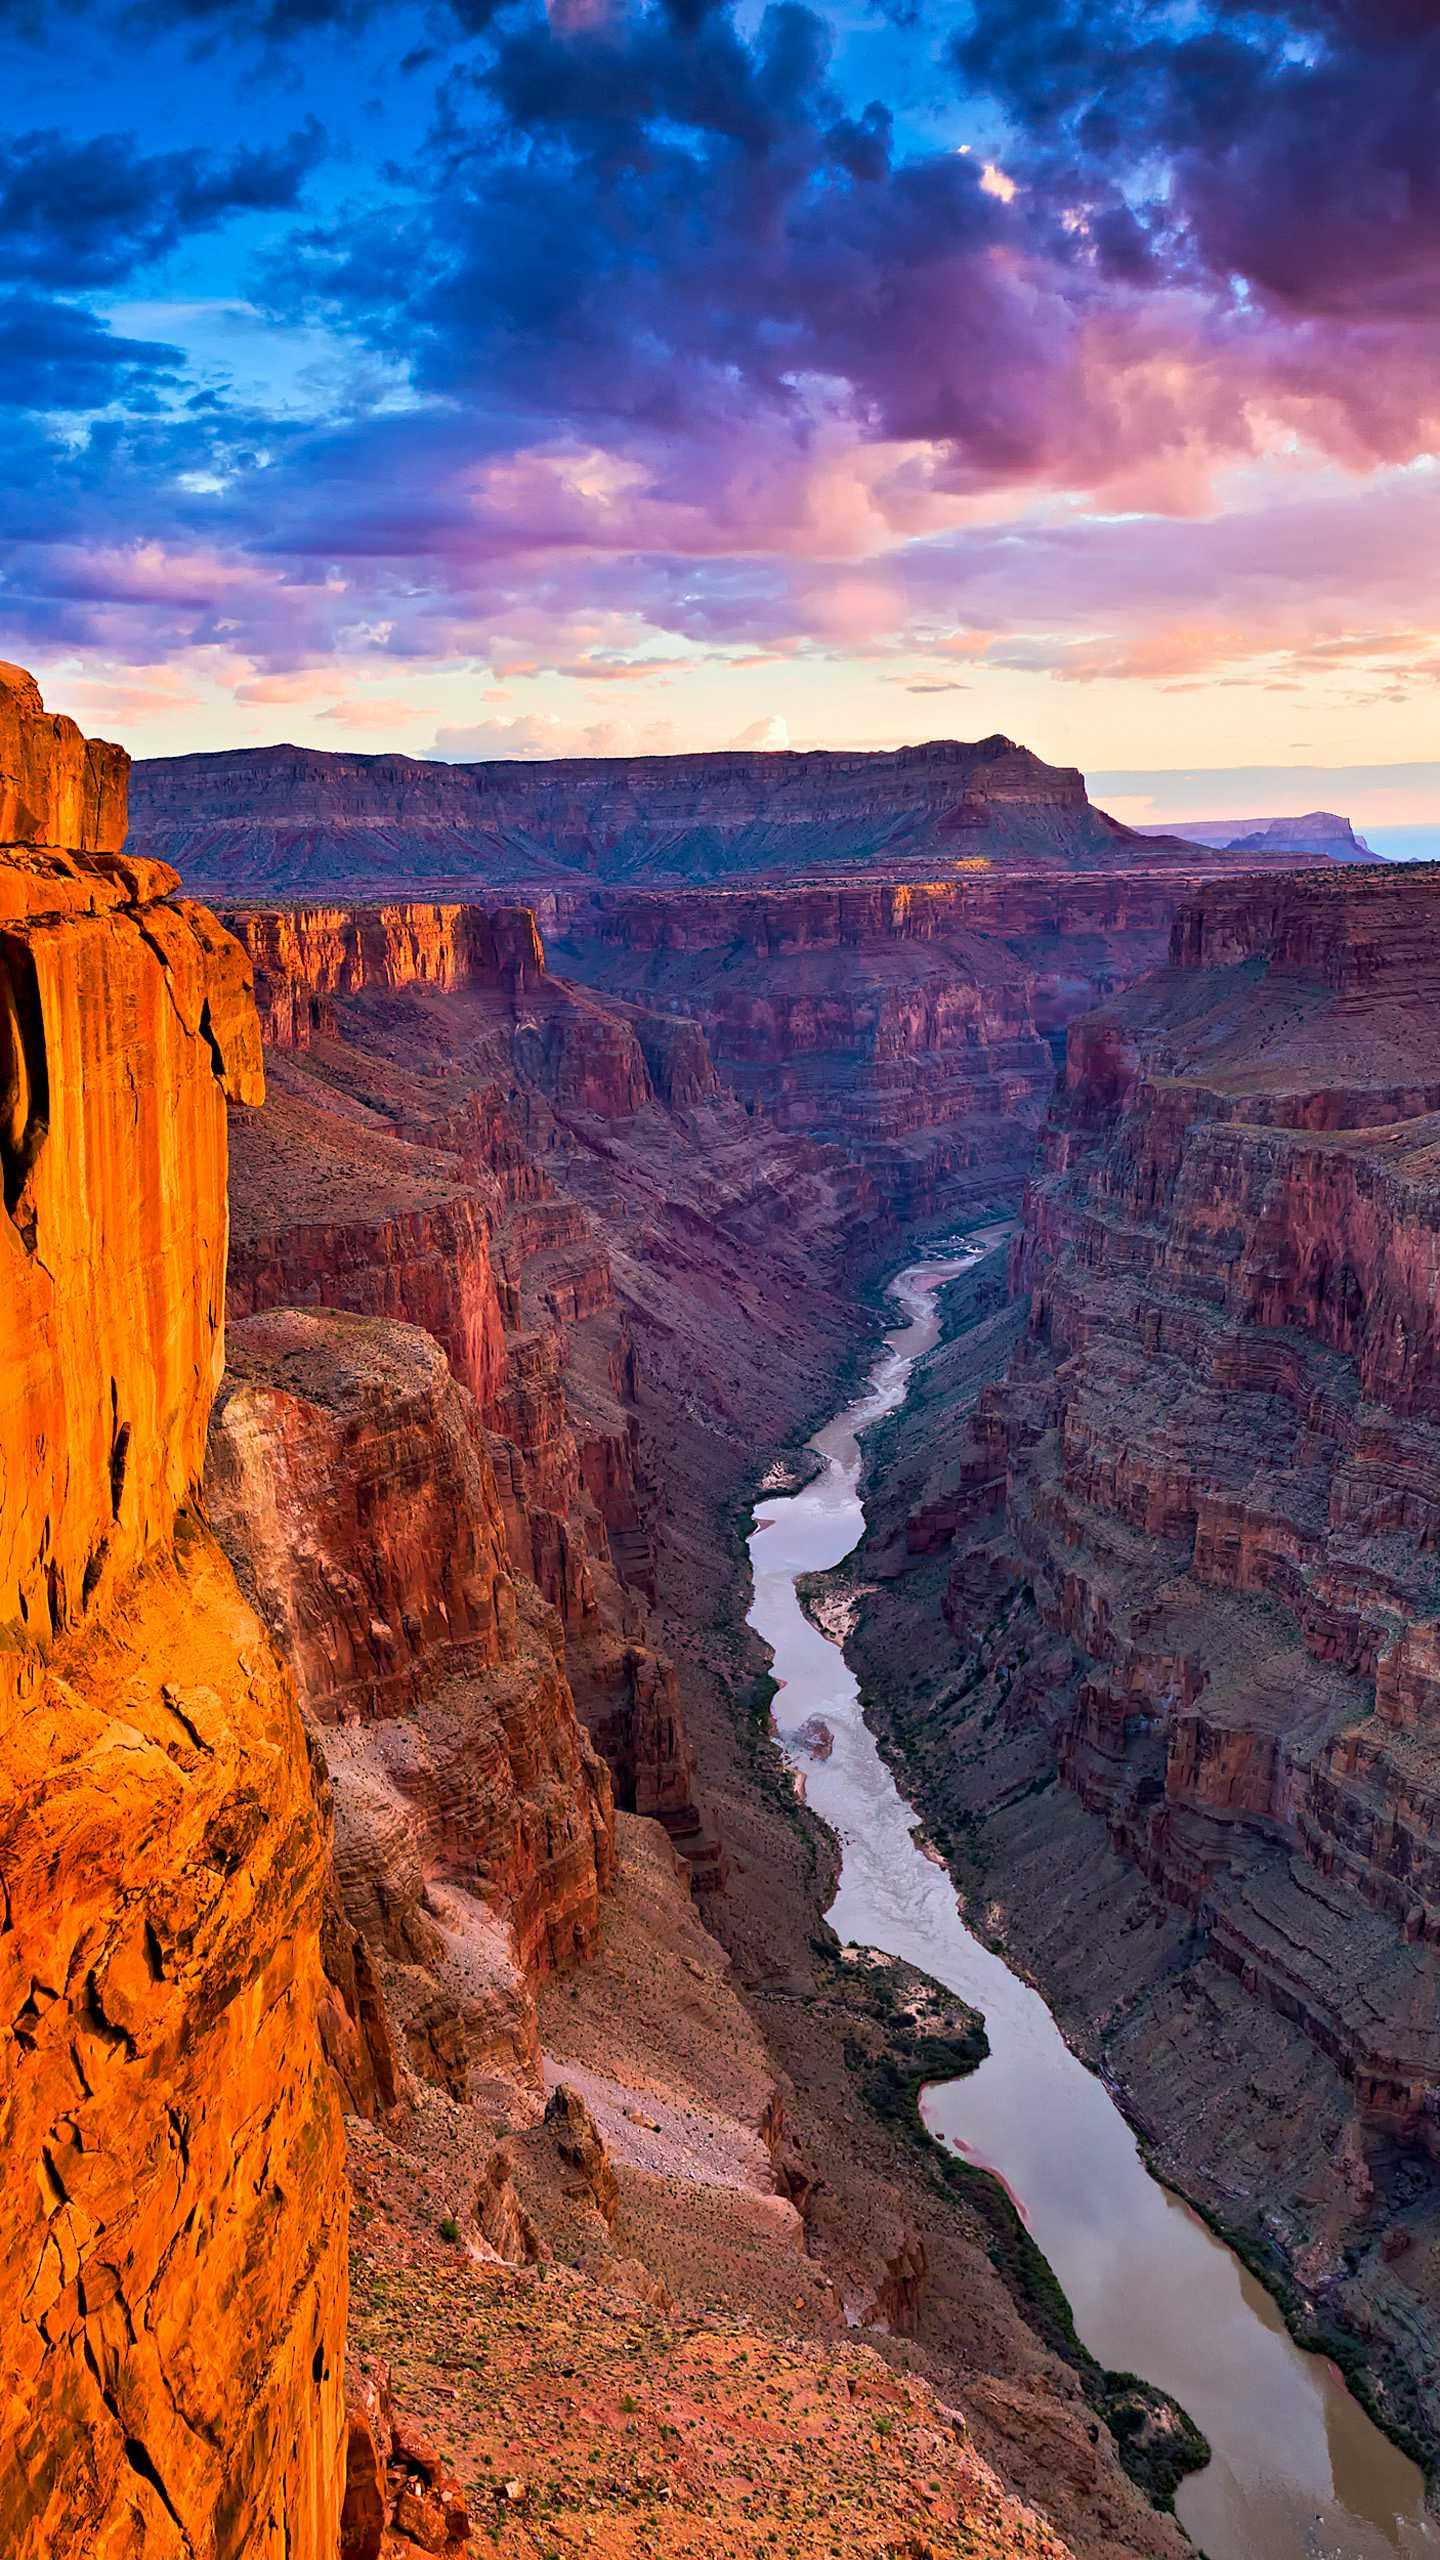 The magnificent Grand Canyon National Park, the grandeur of the Grand Canyon, is not only in its many different peaks and cliffs, but also in its color.